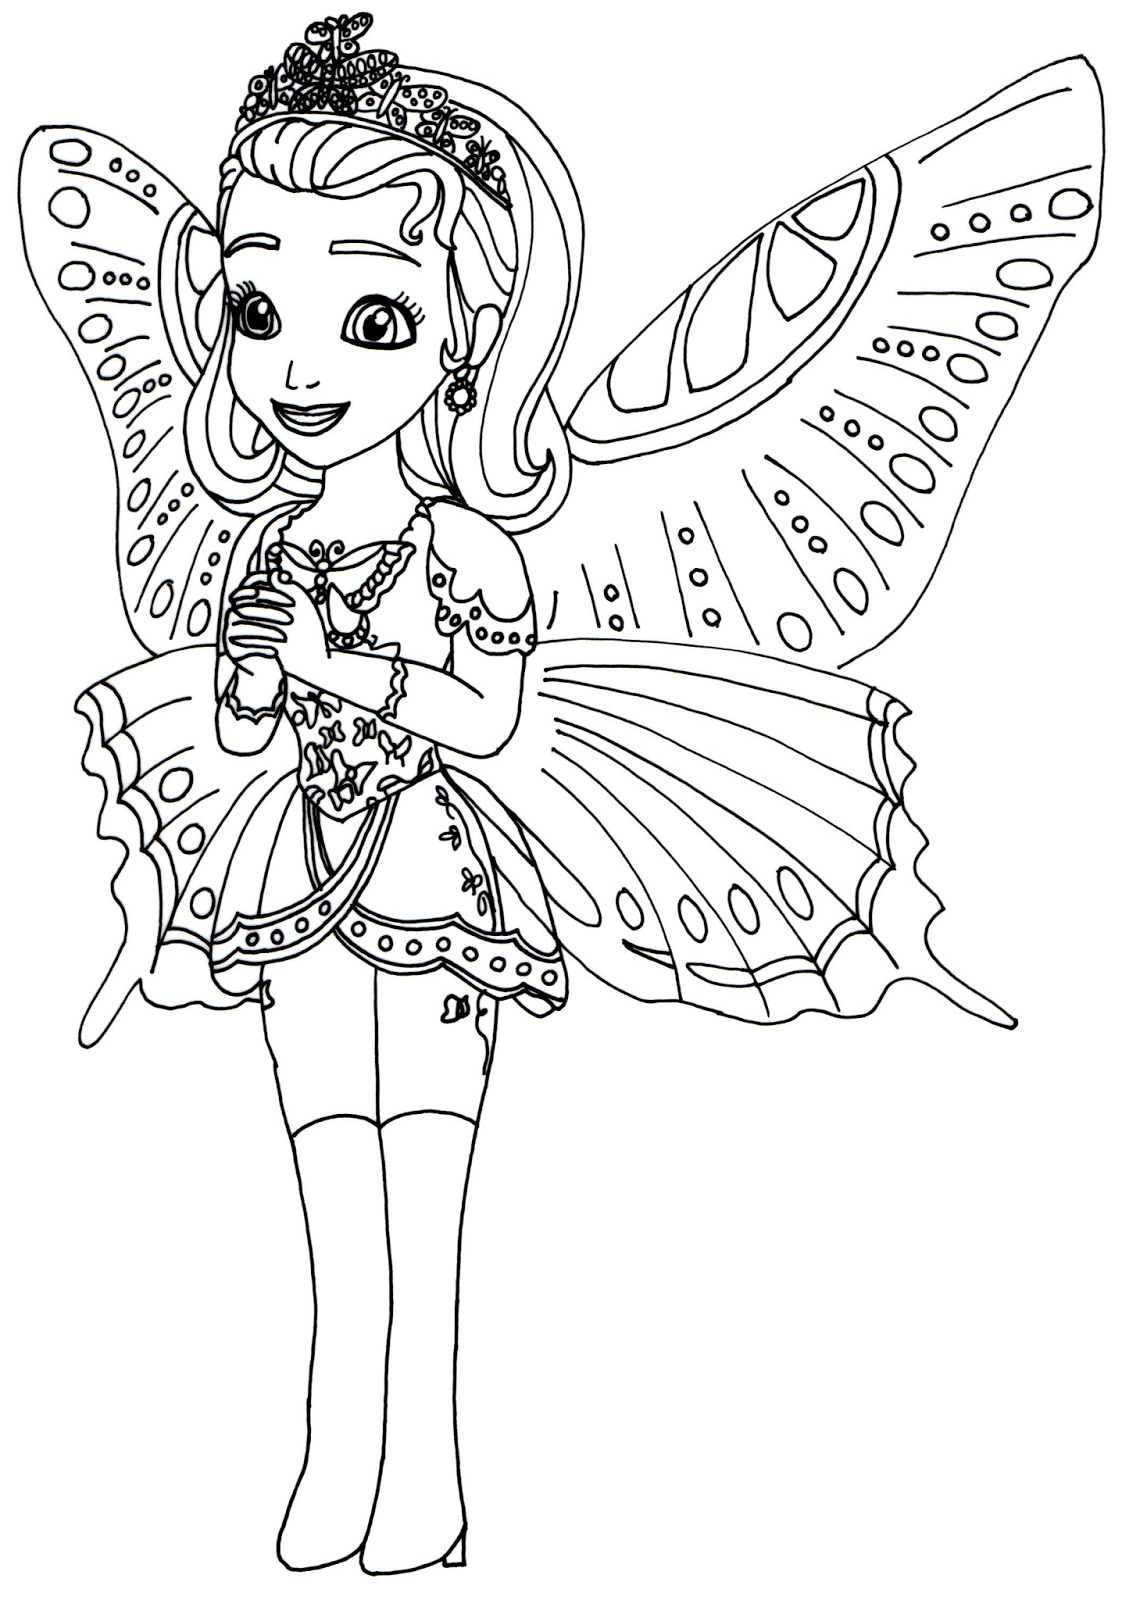 Sofia and Clover coloring page | Free Printable Coloring Pages | 1600x1122